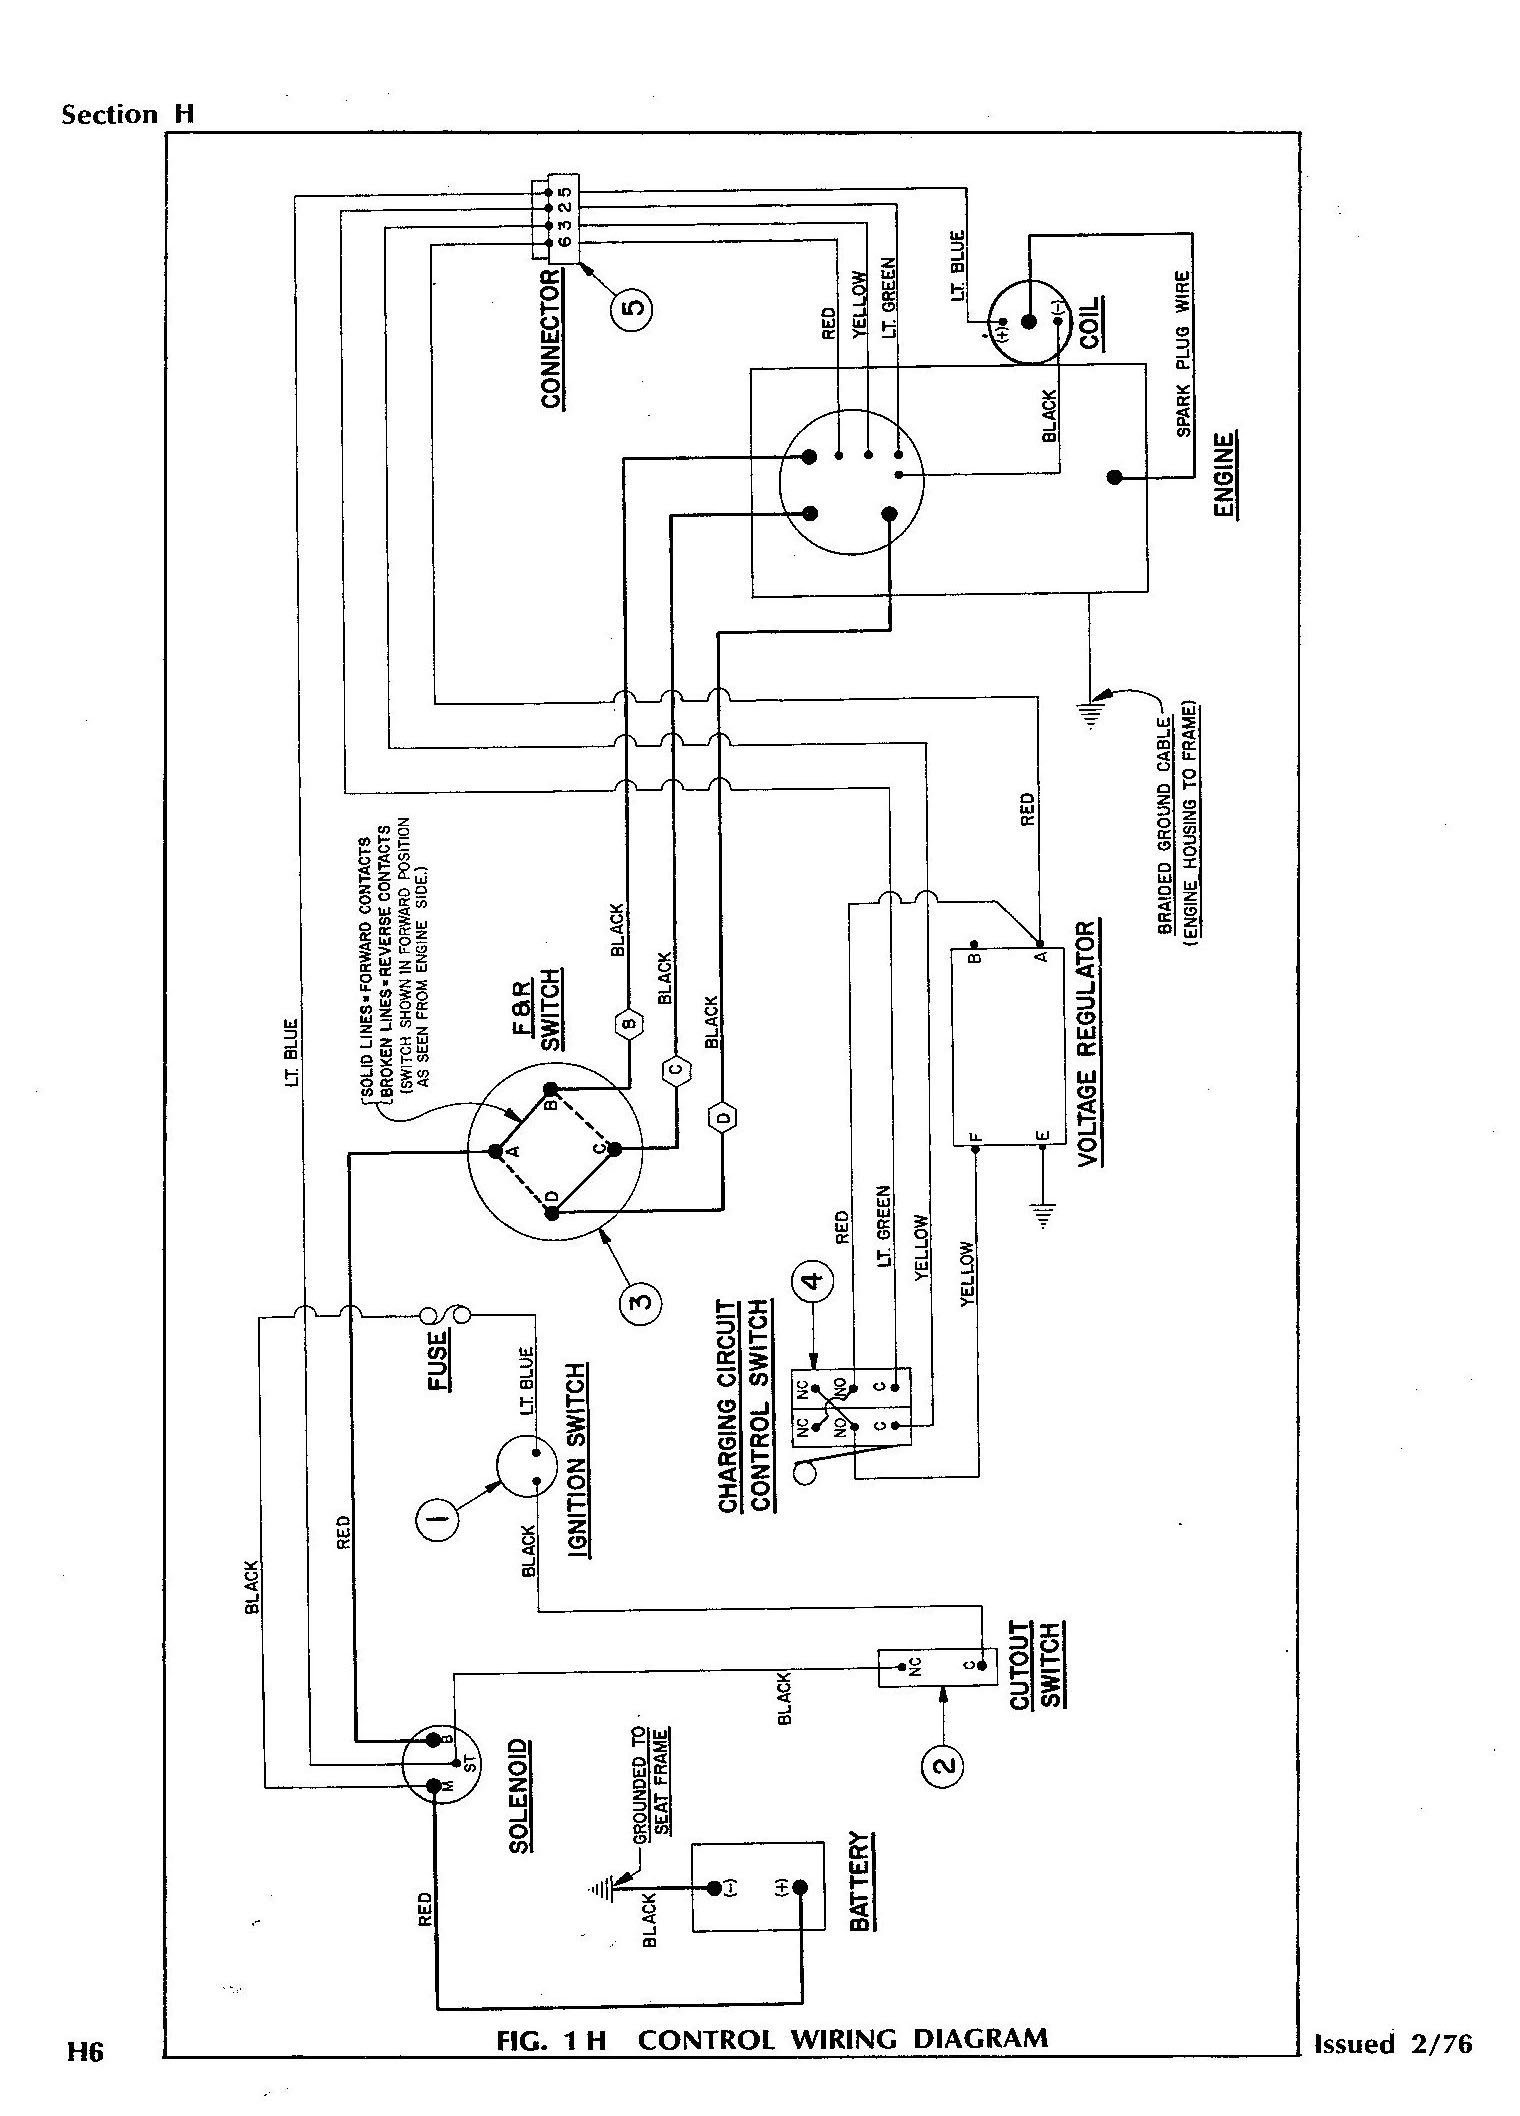 Vintagegolfcartparts Com 1976 Ezgo Battery Wiring Diagram 1976 Ezgo Wiring  Diagram